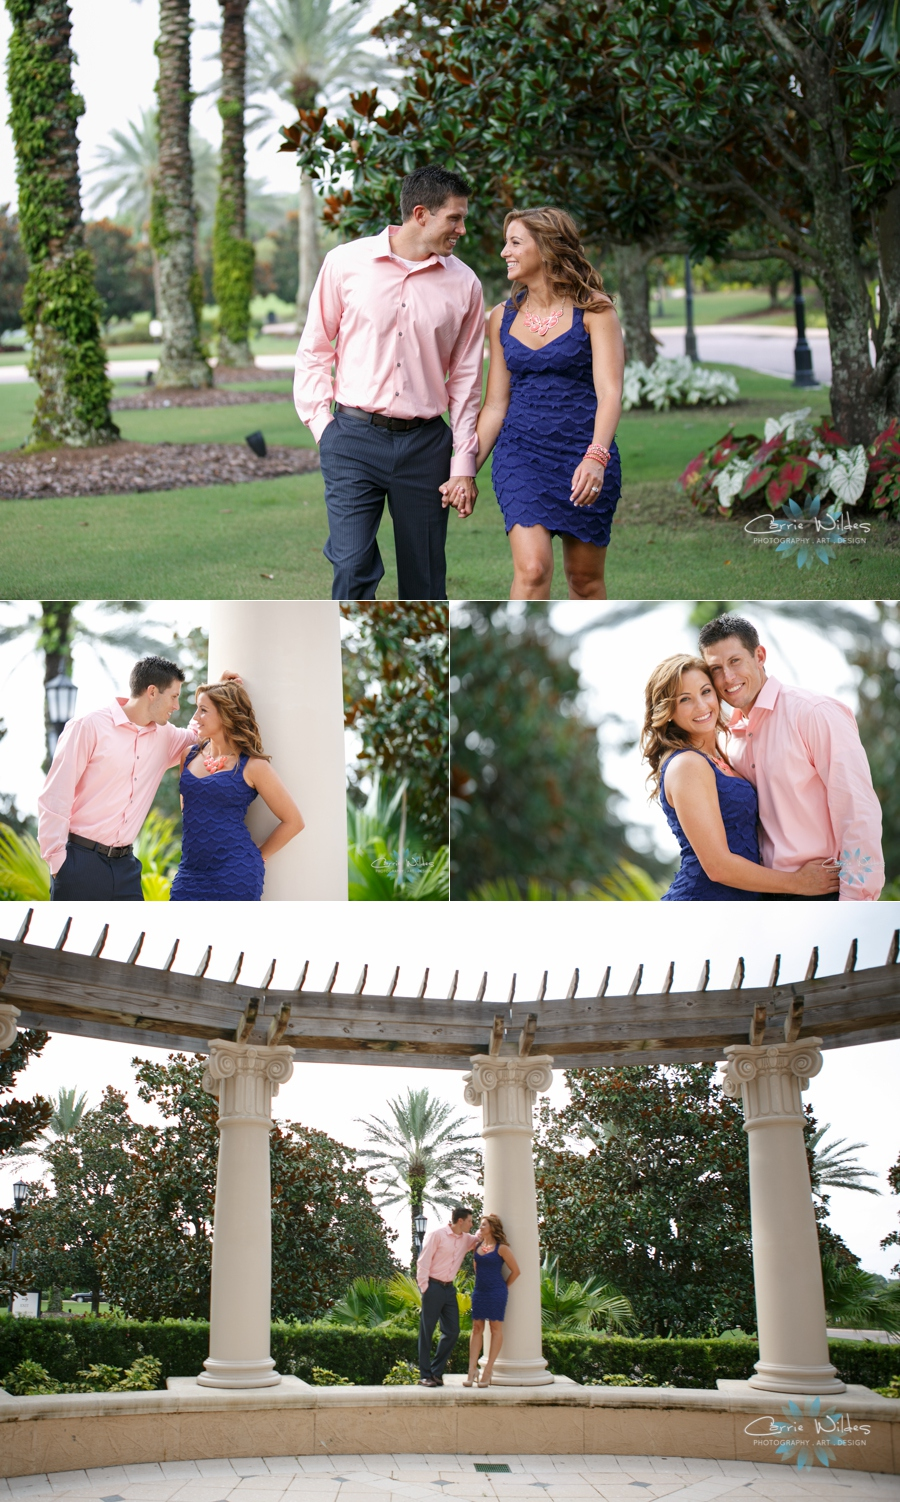 7_28_13 Ritz Carlton Orlando Engagement Session_0001.jpg